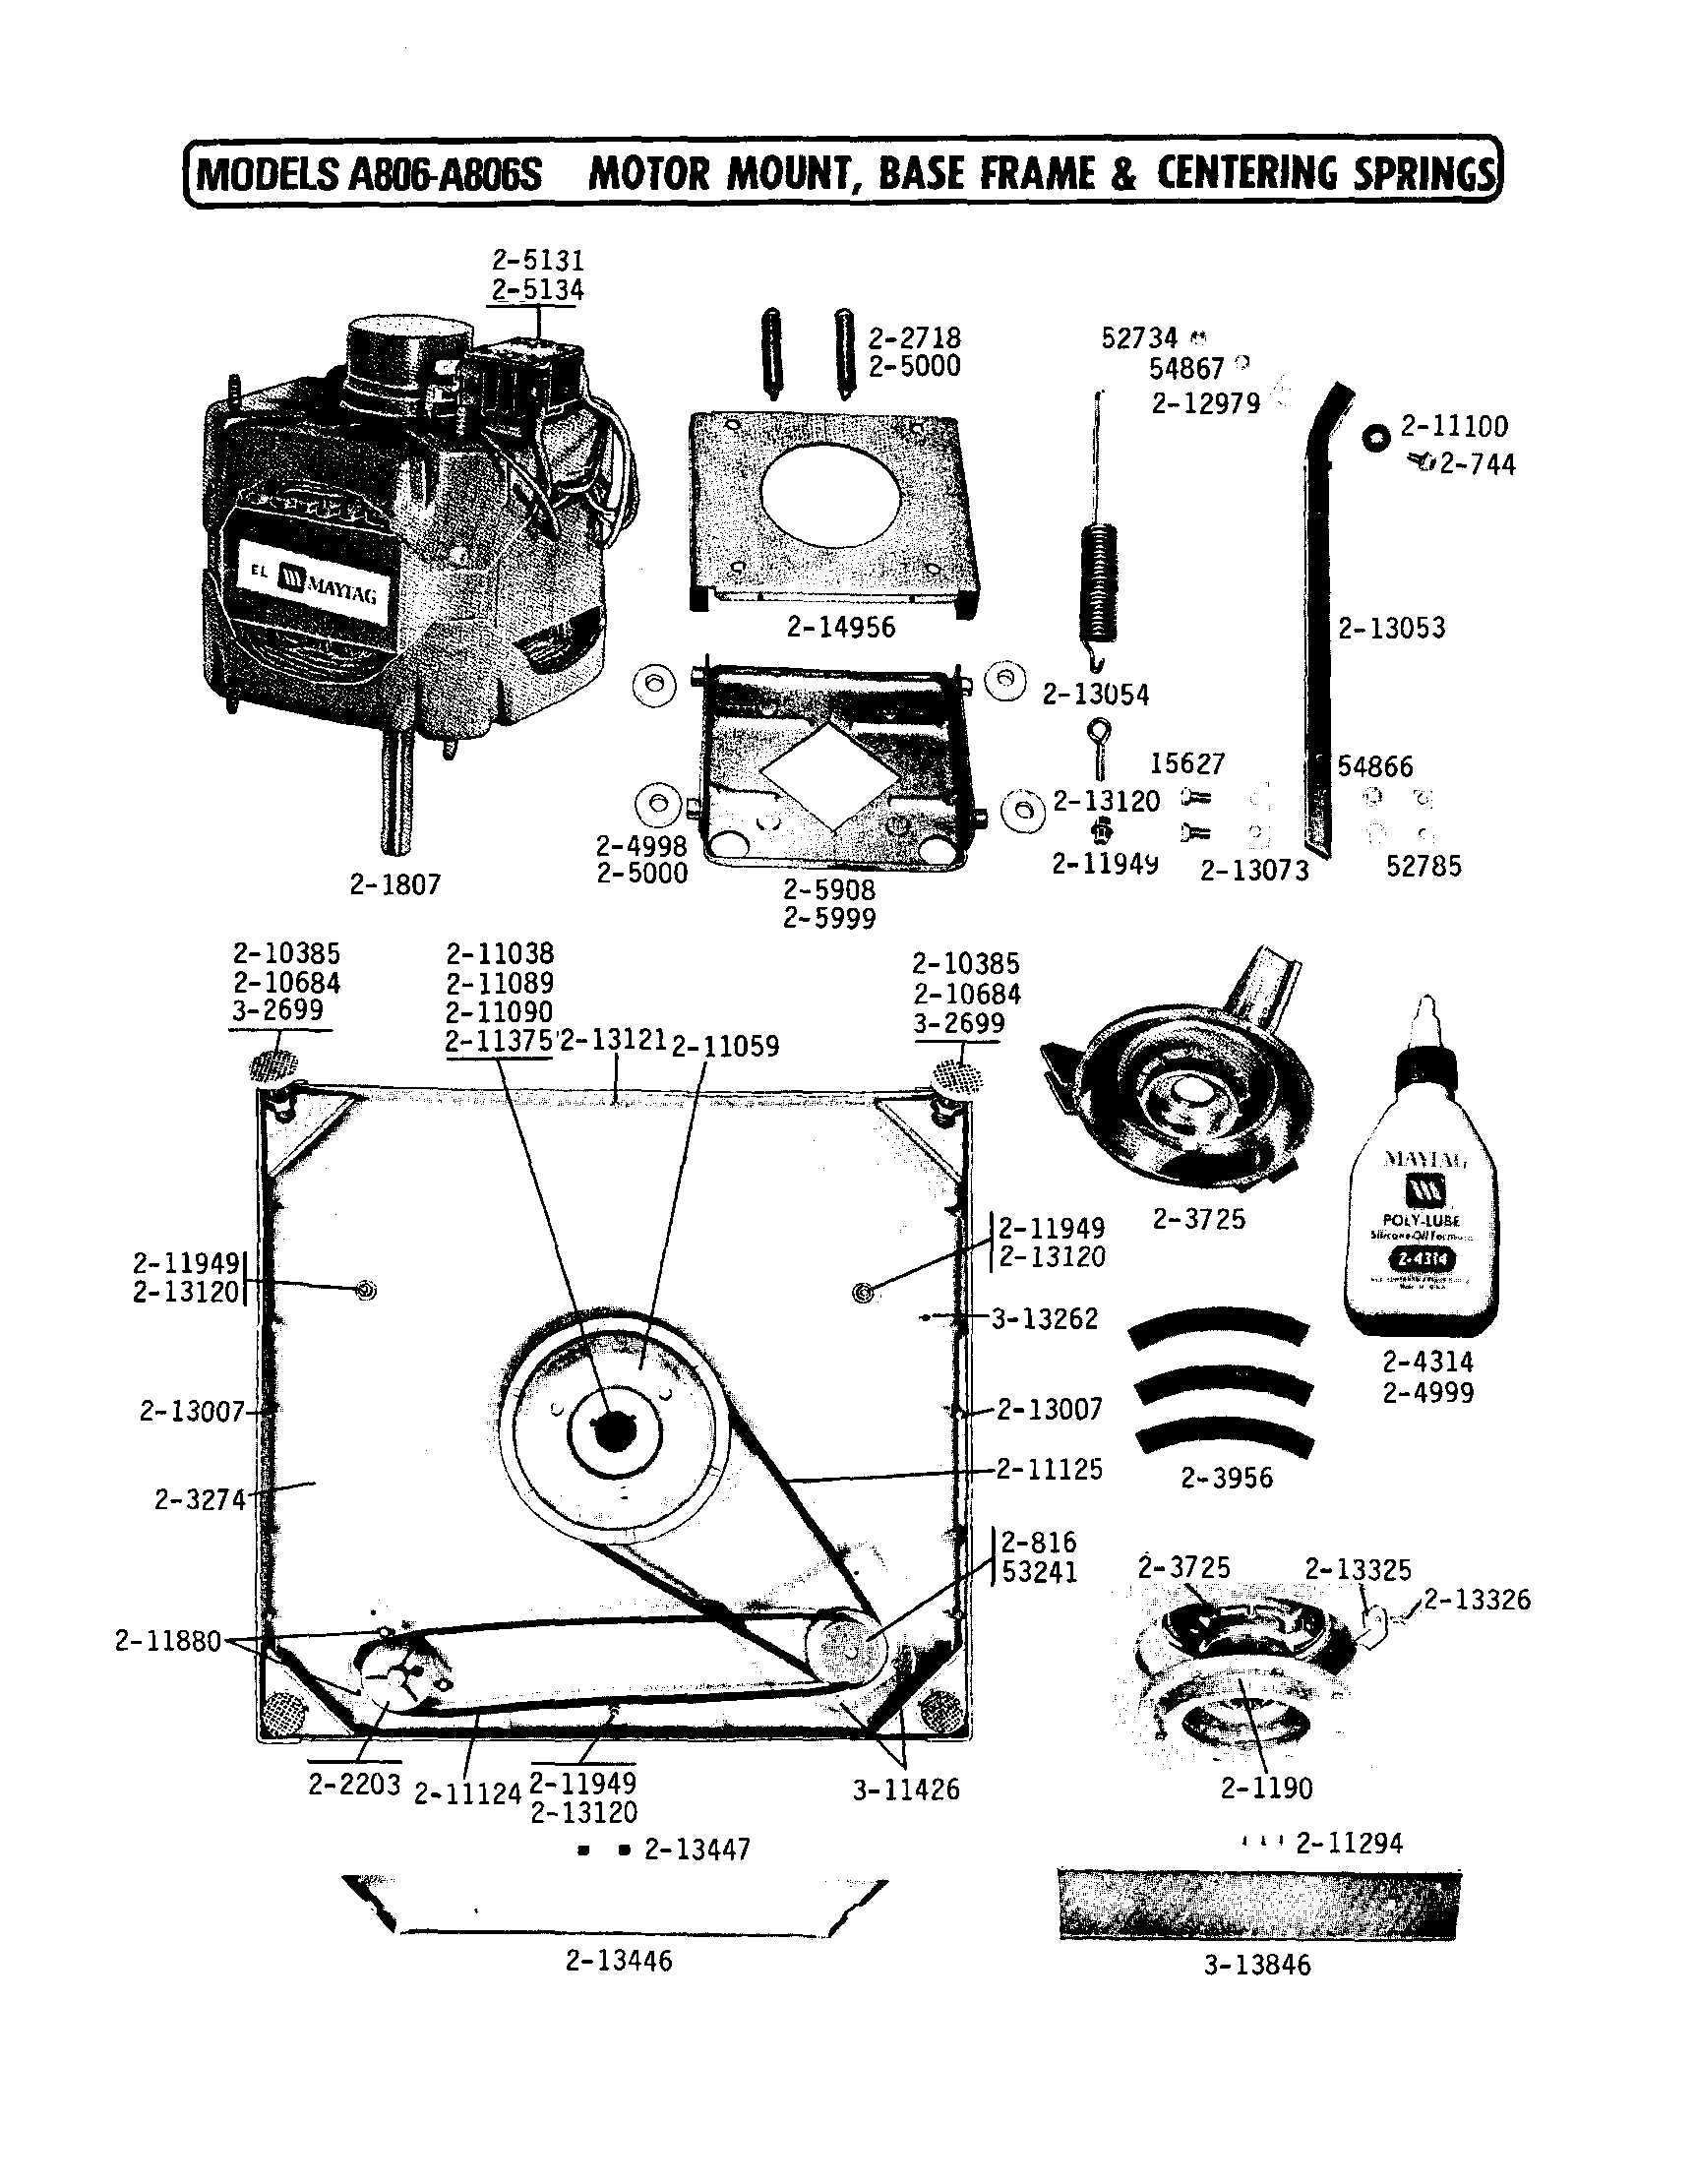 motor mount parts maytag a806 timer stove clocks and appliance timers maytag washer motor wiring diagram at edmiracle.co